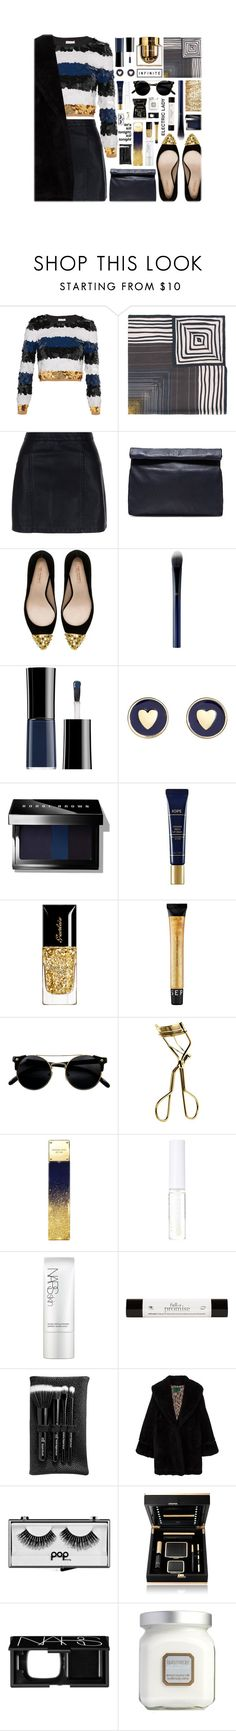 """""""New Year's Eve"""" by vendre-du-reve ❤ liked on Polyvore featuring Sonia Rykiel, Faliero Sarti, New Look, Marie Turnor, Zara, Clé de Peau Beauté, Giorgio Armani, Brooks Brothers, Bobbi Brown Cosmetics and Iope"""